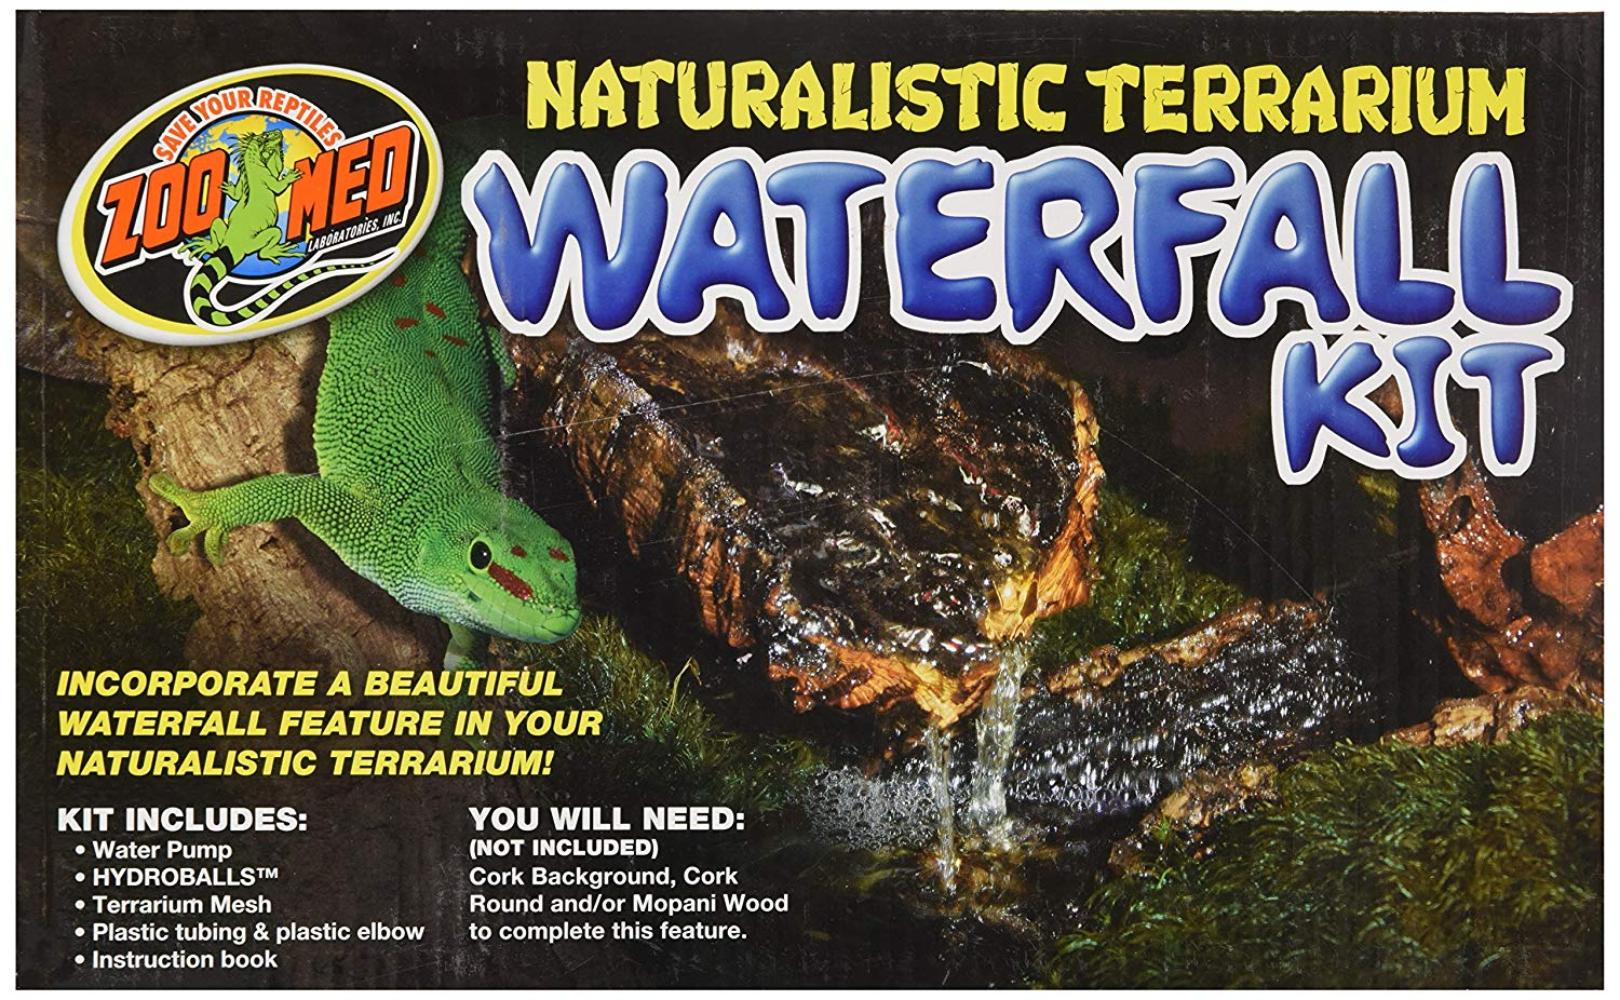 Naturalistic Terrarium Waterfall Kit, Incorporate a beautiful waterfall feature in your naturalistic... by